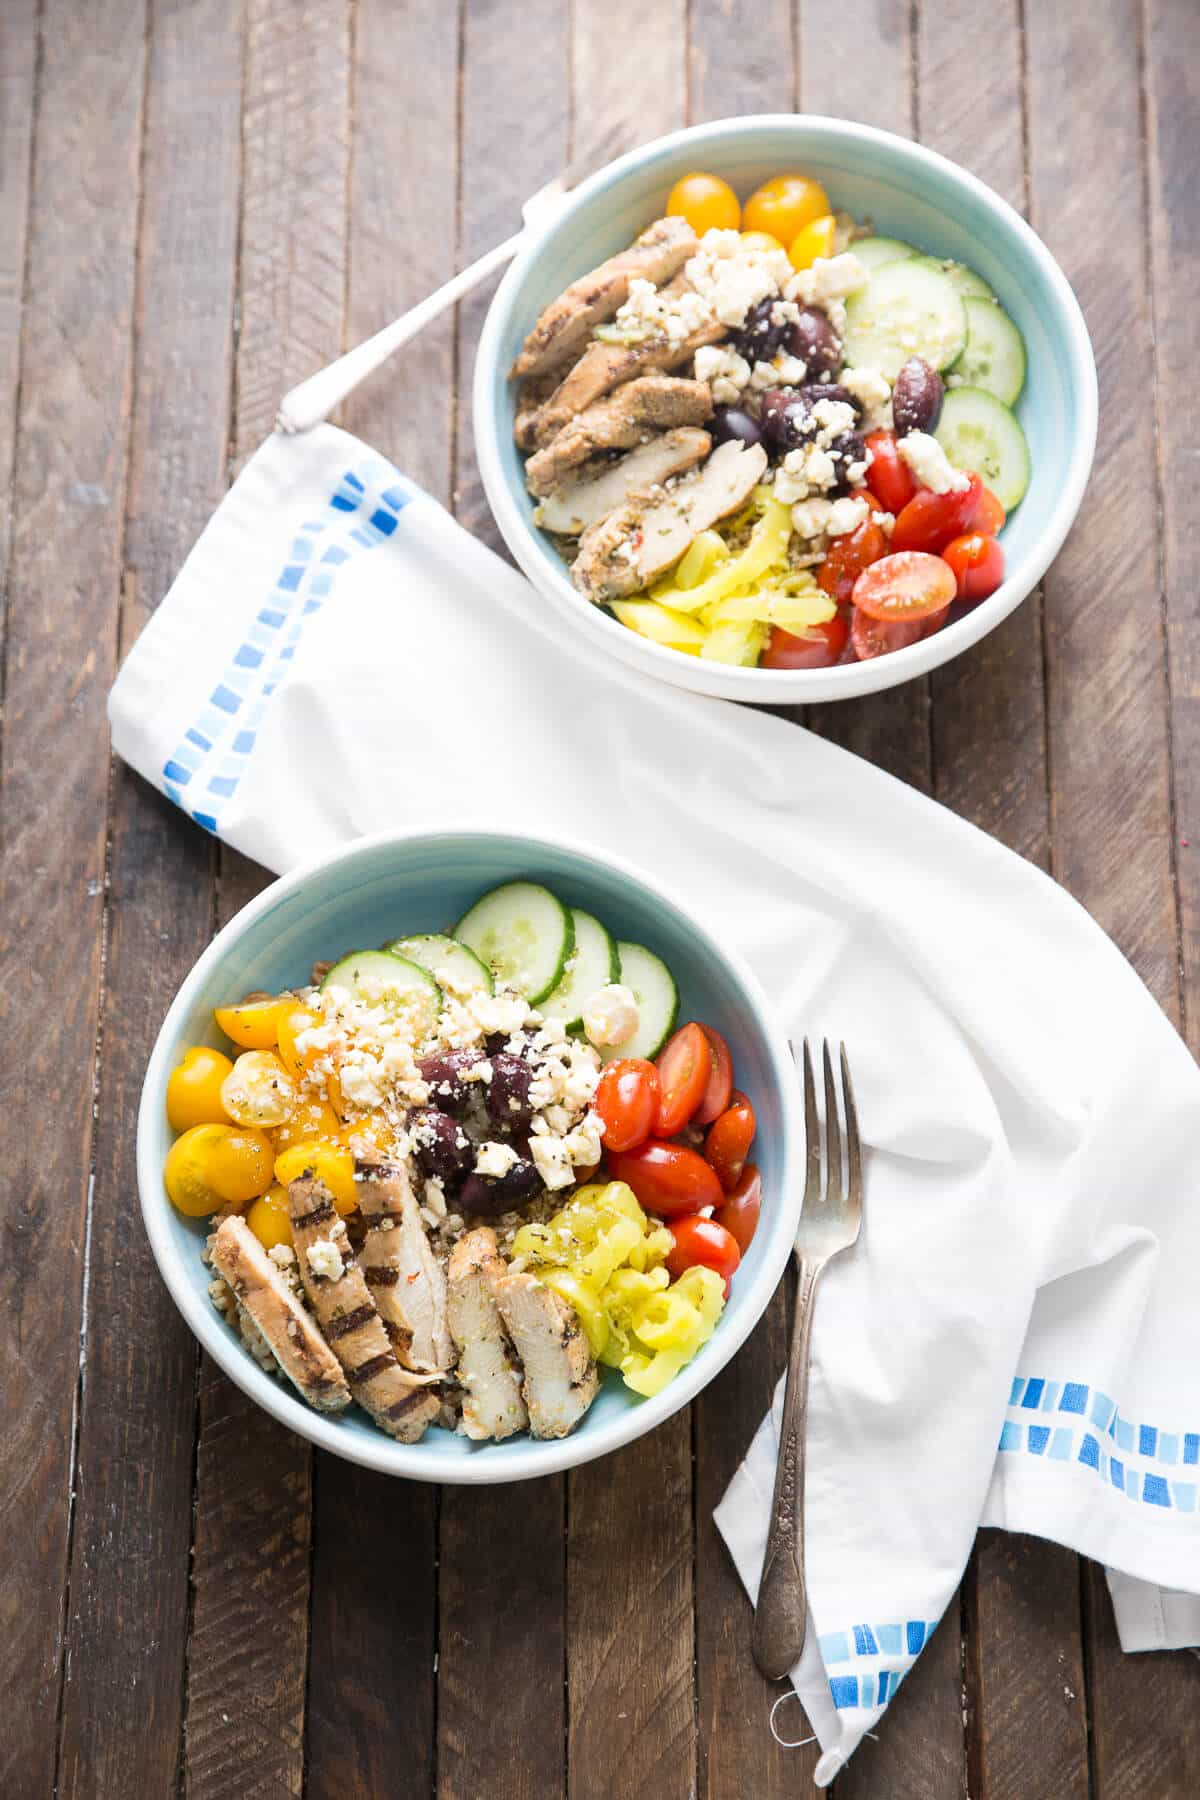 This Mediterranean chicken bowl is filled with nothing but goodness! This is a meal you can feel good about! lemonsforlulu.com